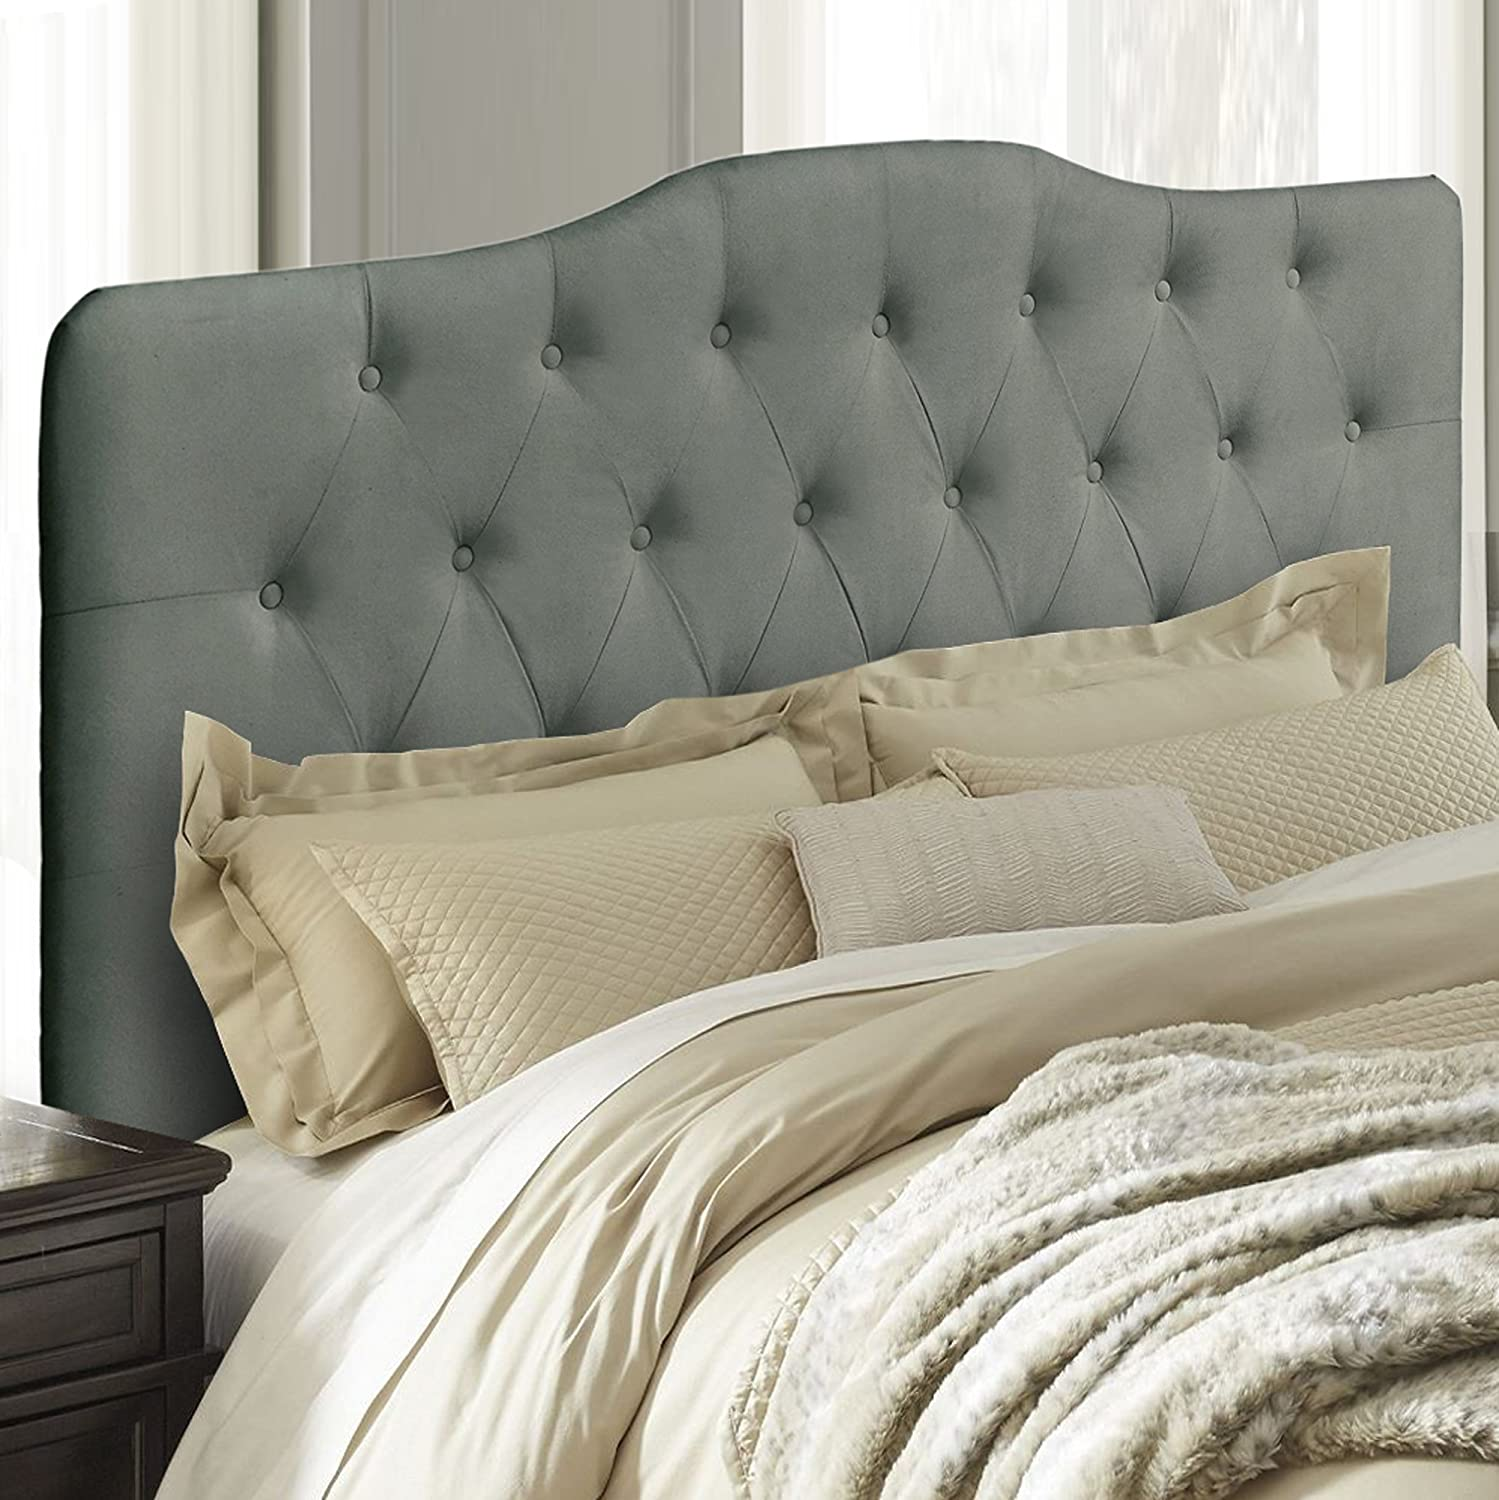 Upholstered Tufted Fabric Headboard Queen, Gray